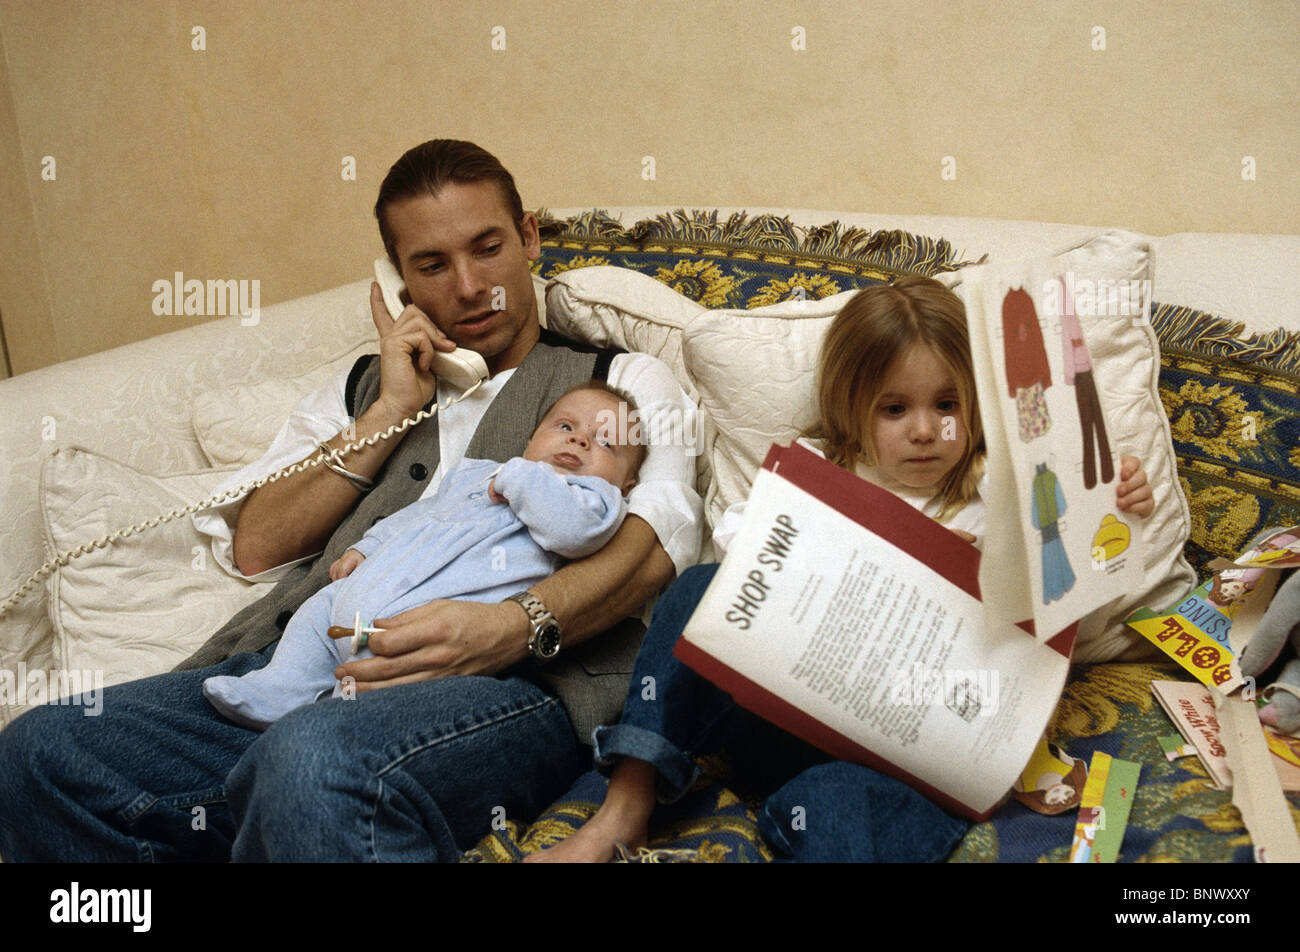 father on the phone while holding the baby and watching his daughter playing - Stock Image